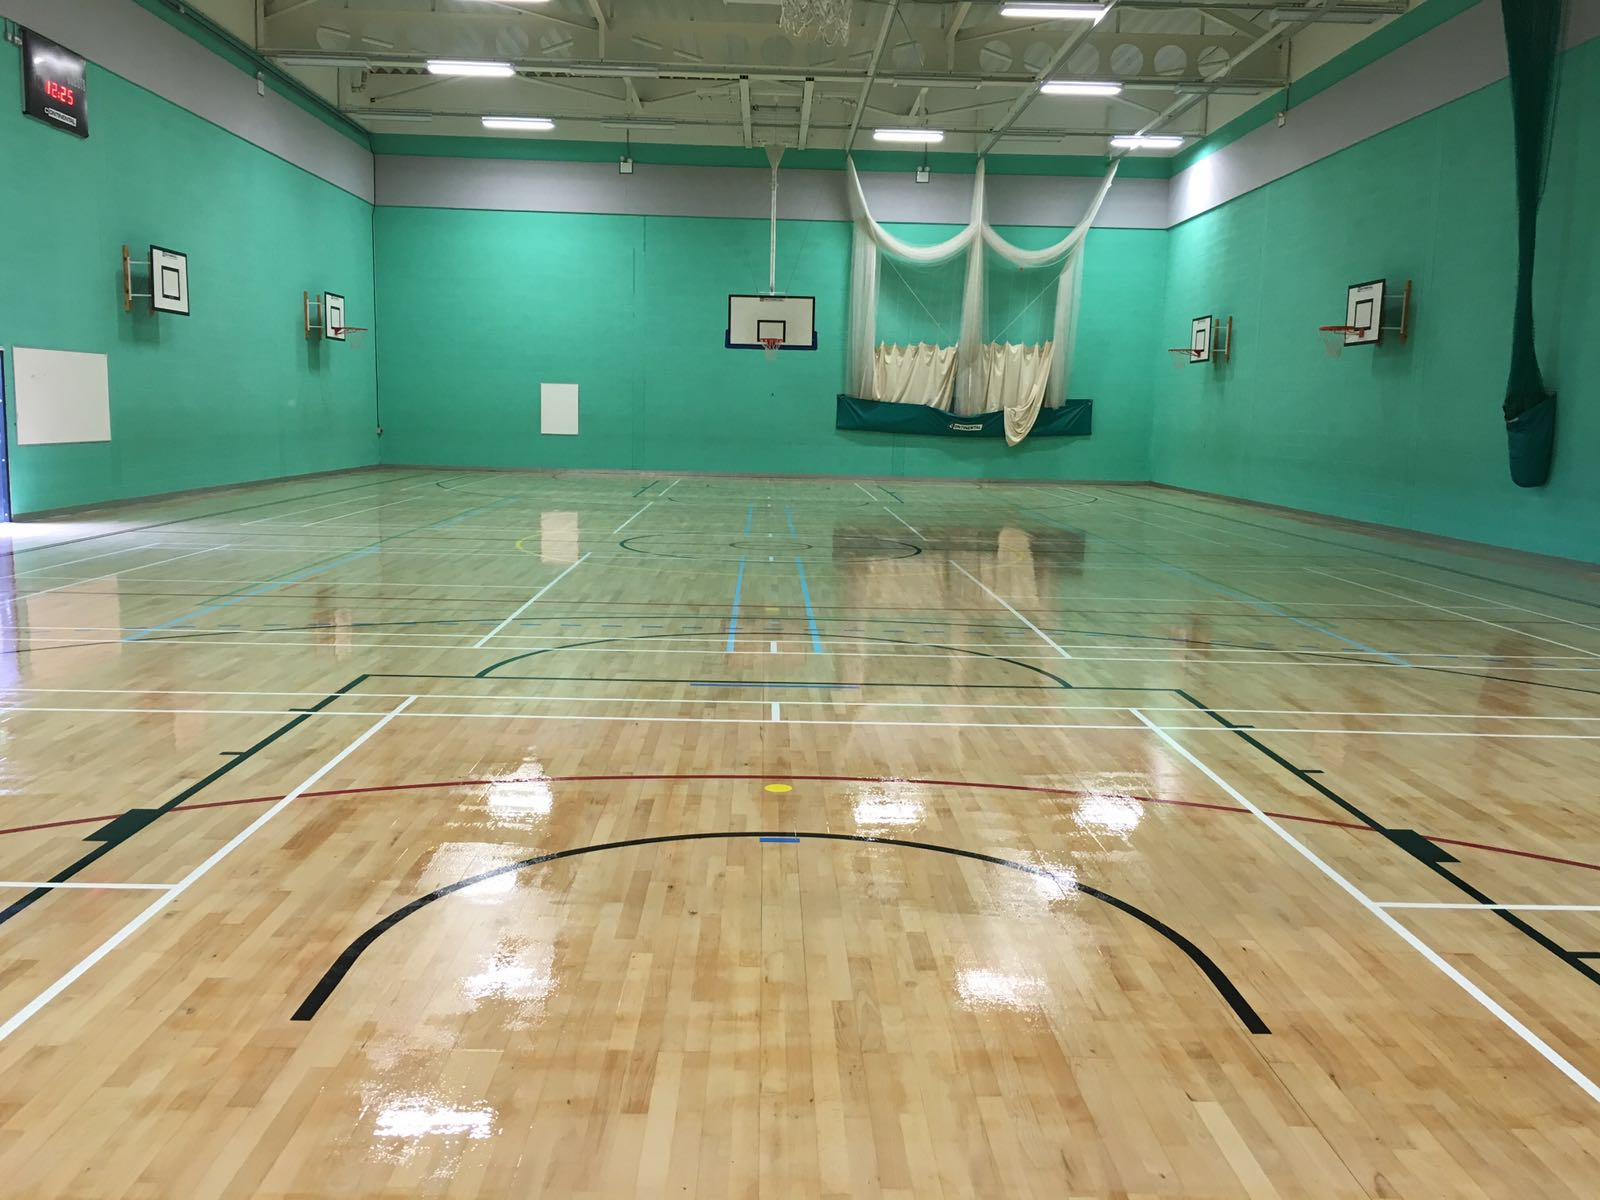 School Timber sports hall court refurbishment with court markings by Sports Surfaces UK